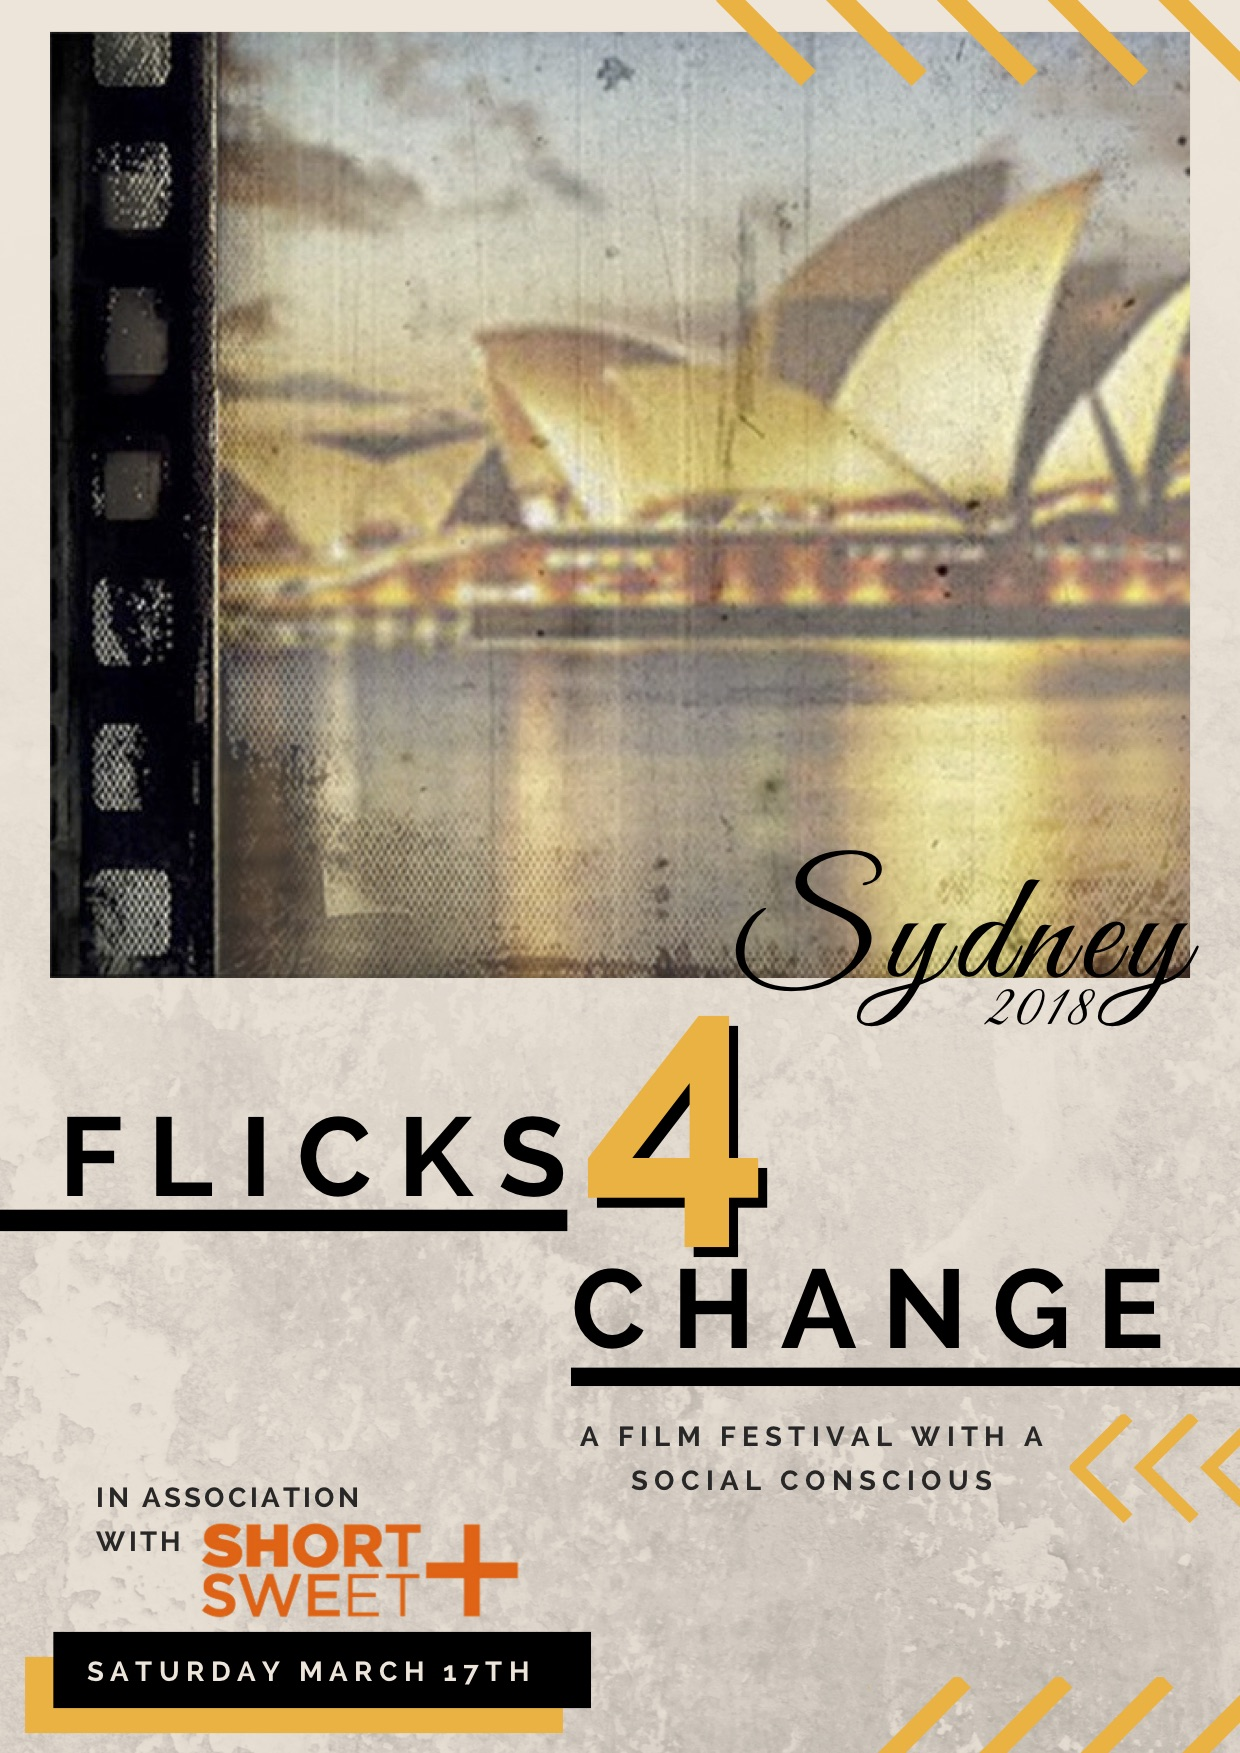 F4C Goes International to Sydney, Australia! - In association with Short + Sweet, Flicks4Change goes International to bring change all over the globe.